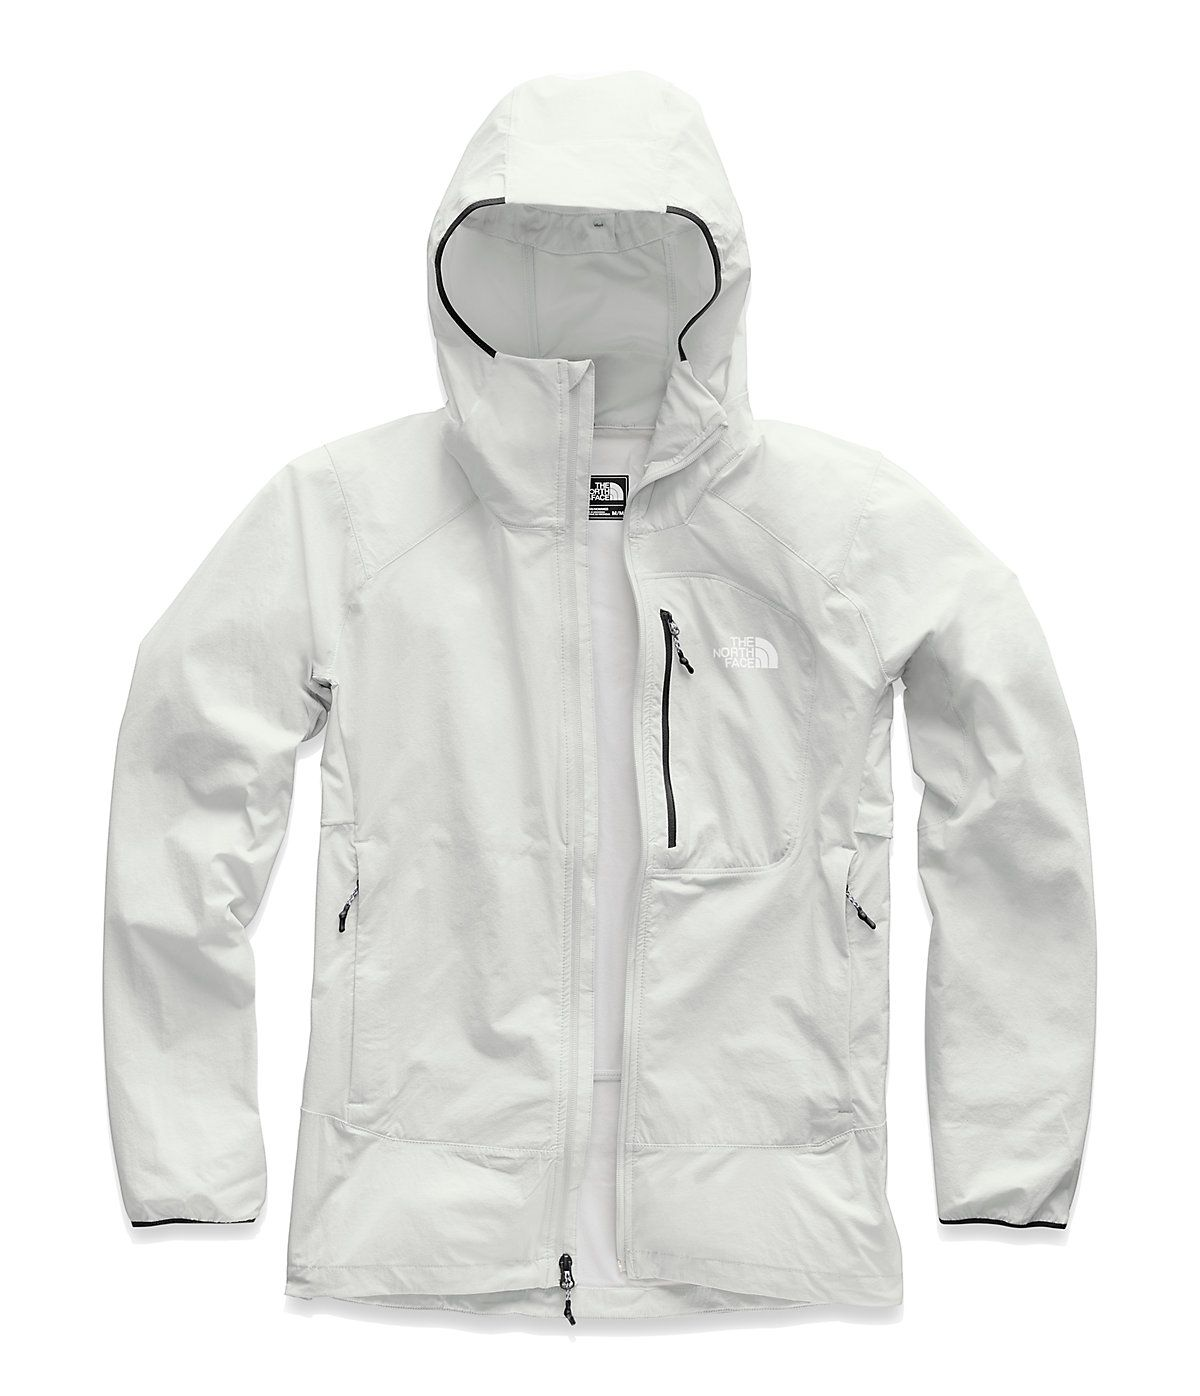 Men S North Dome Stretch Wind Jacket The North Face North Face Jacket Wind Jacket Mens Jackets [ 1396 x 1200 Pixel ]